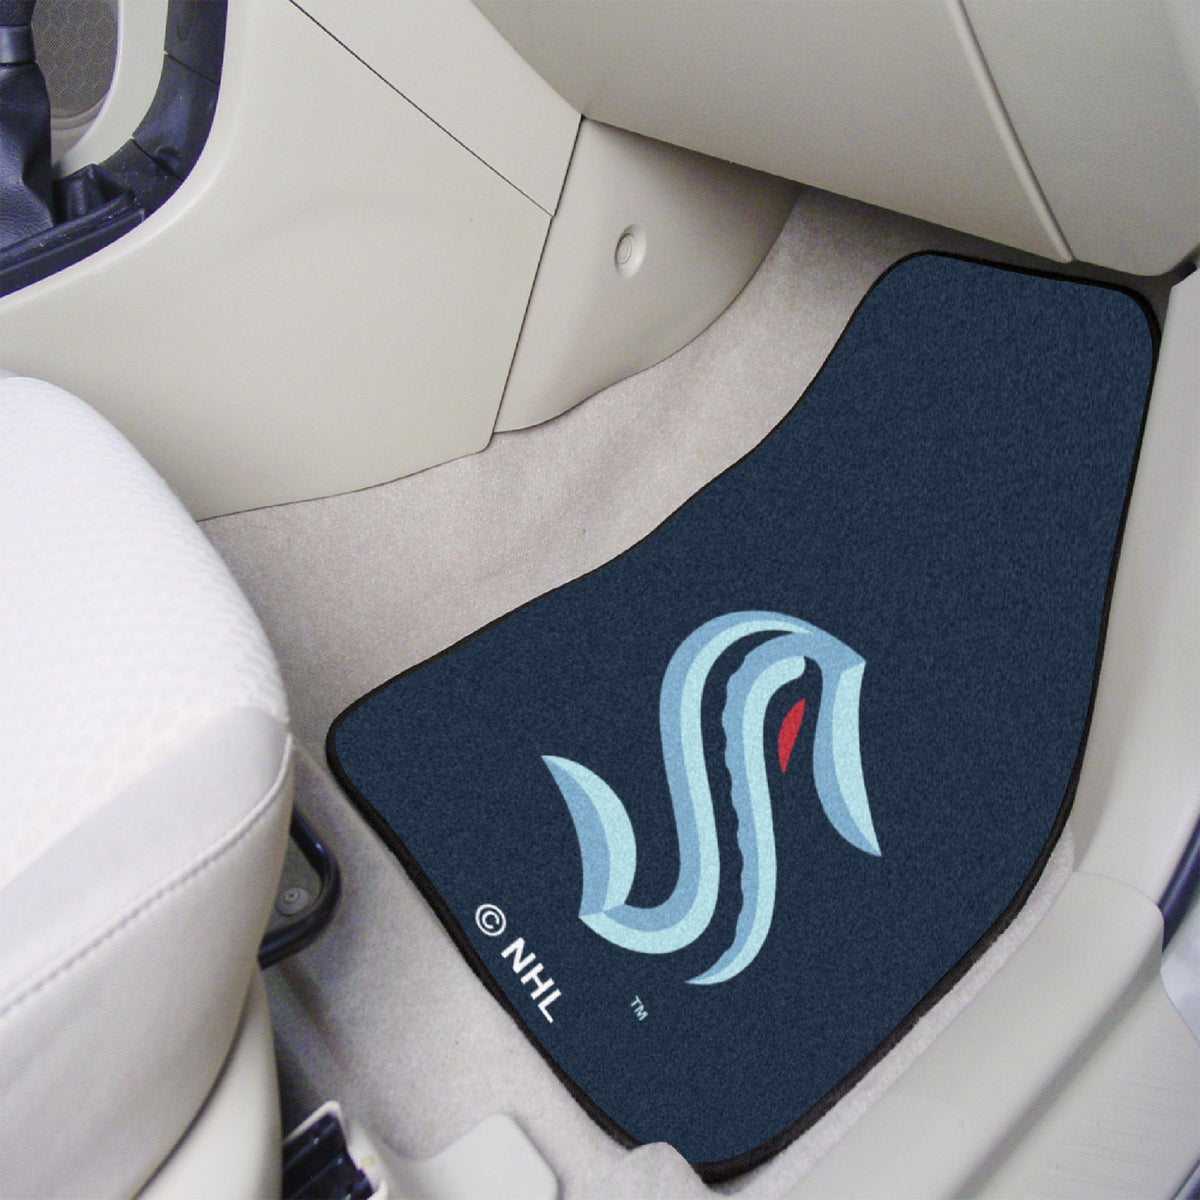 NHL - Carpet Car Mat, 2-Piece Set NHL Mats, Front Car Mats, 2-pc Carpet Car Mat Set, NHL, Auto Fan Mats Seattle Kraken